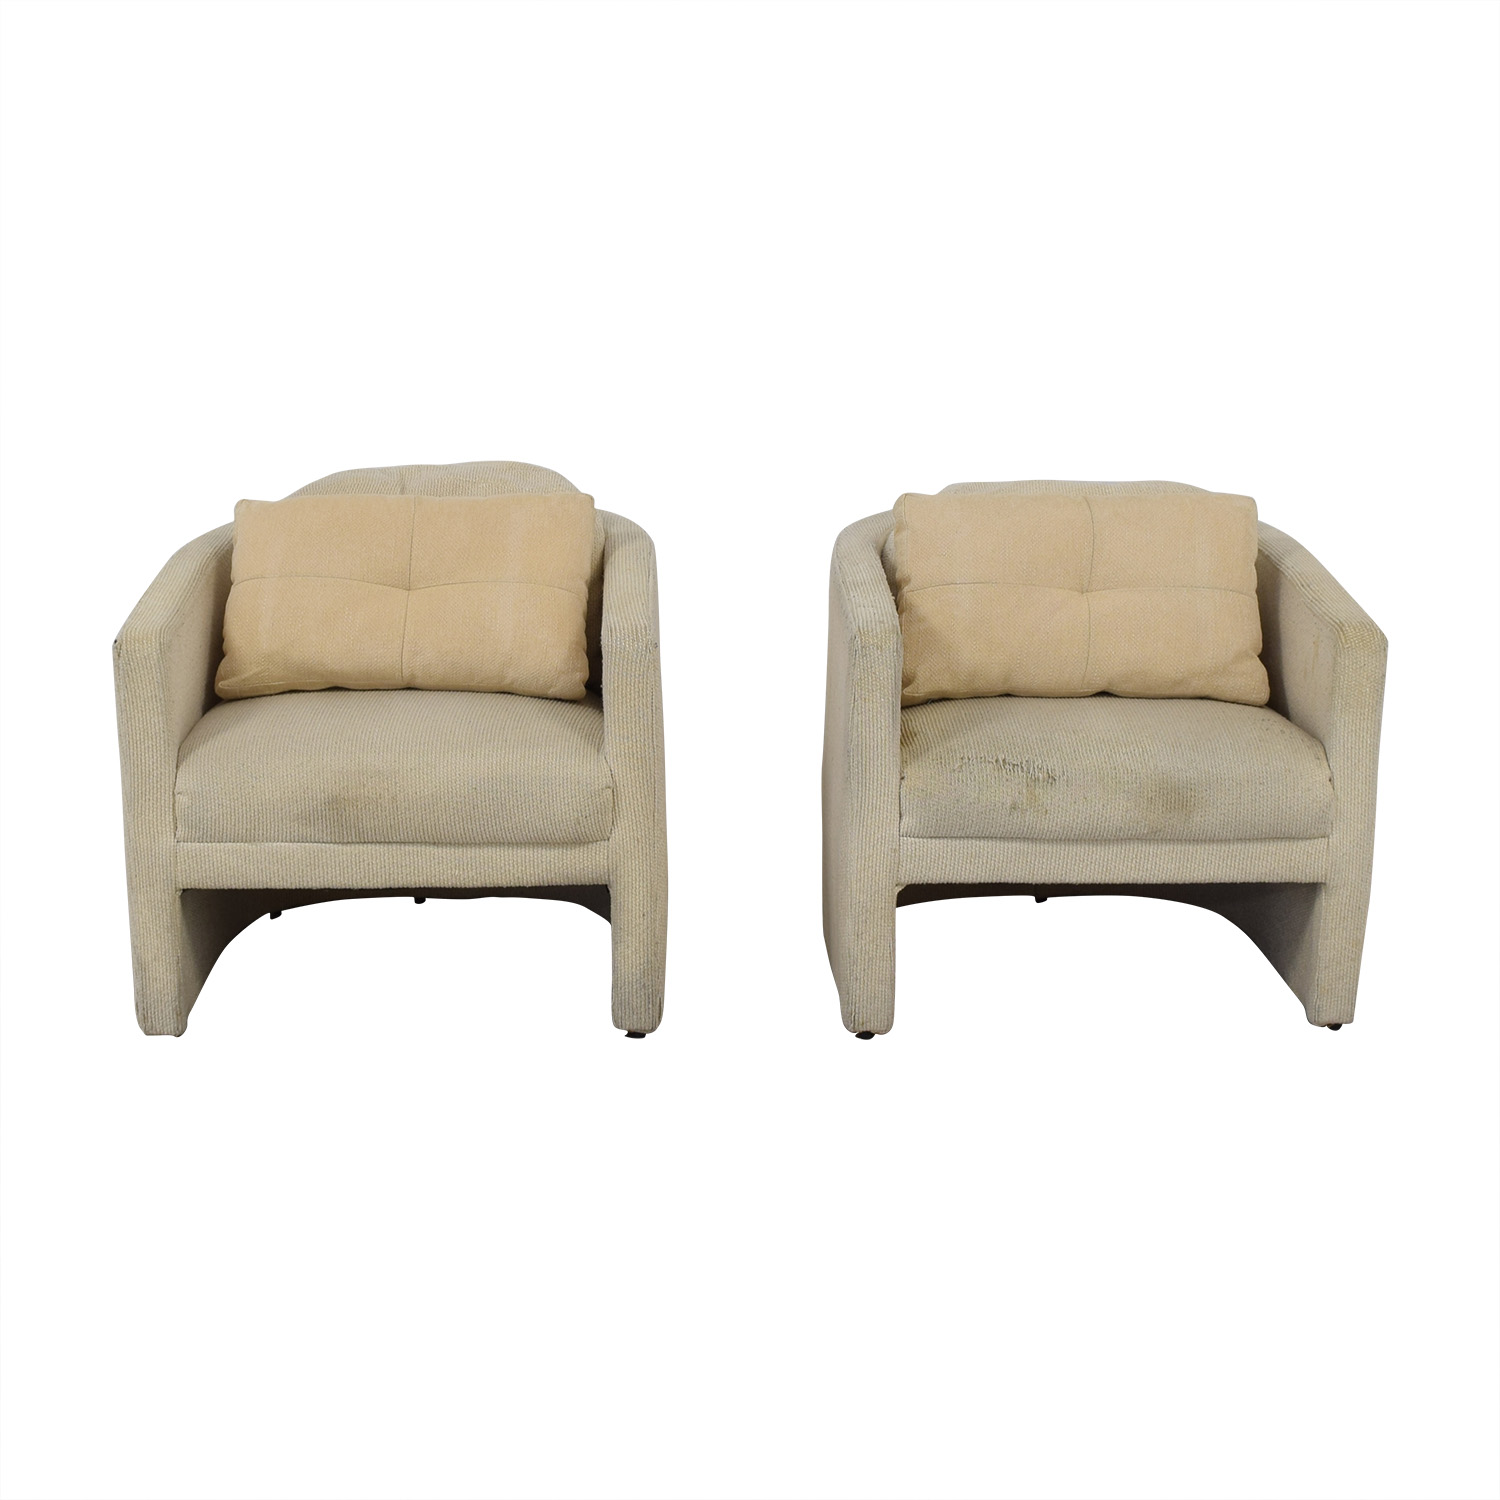 Cream Upholstered Accent Chairs